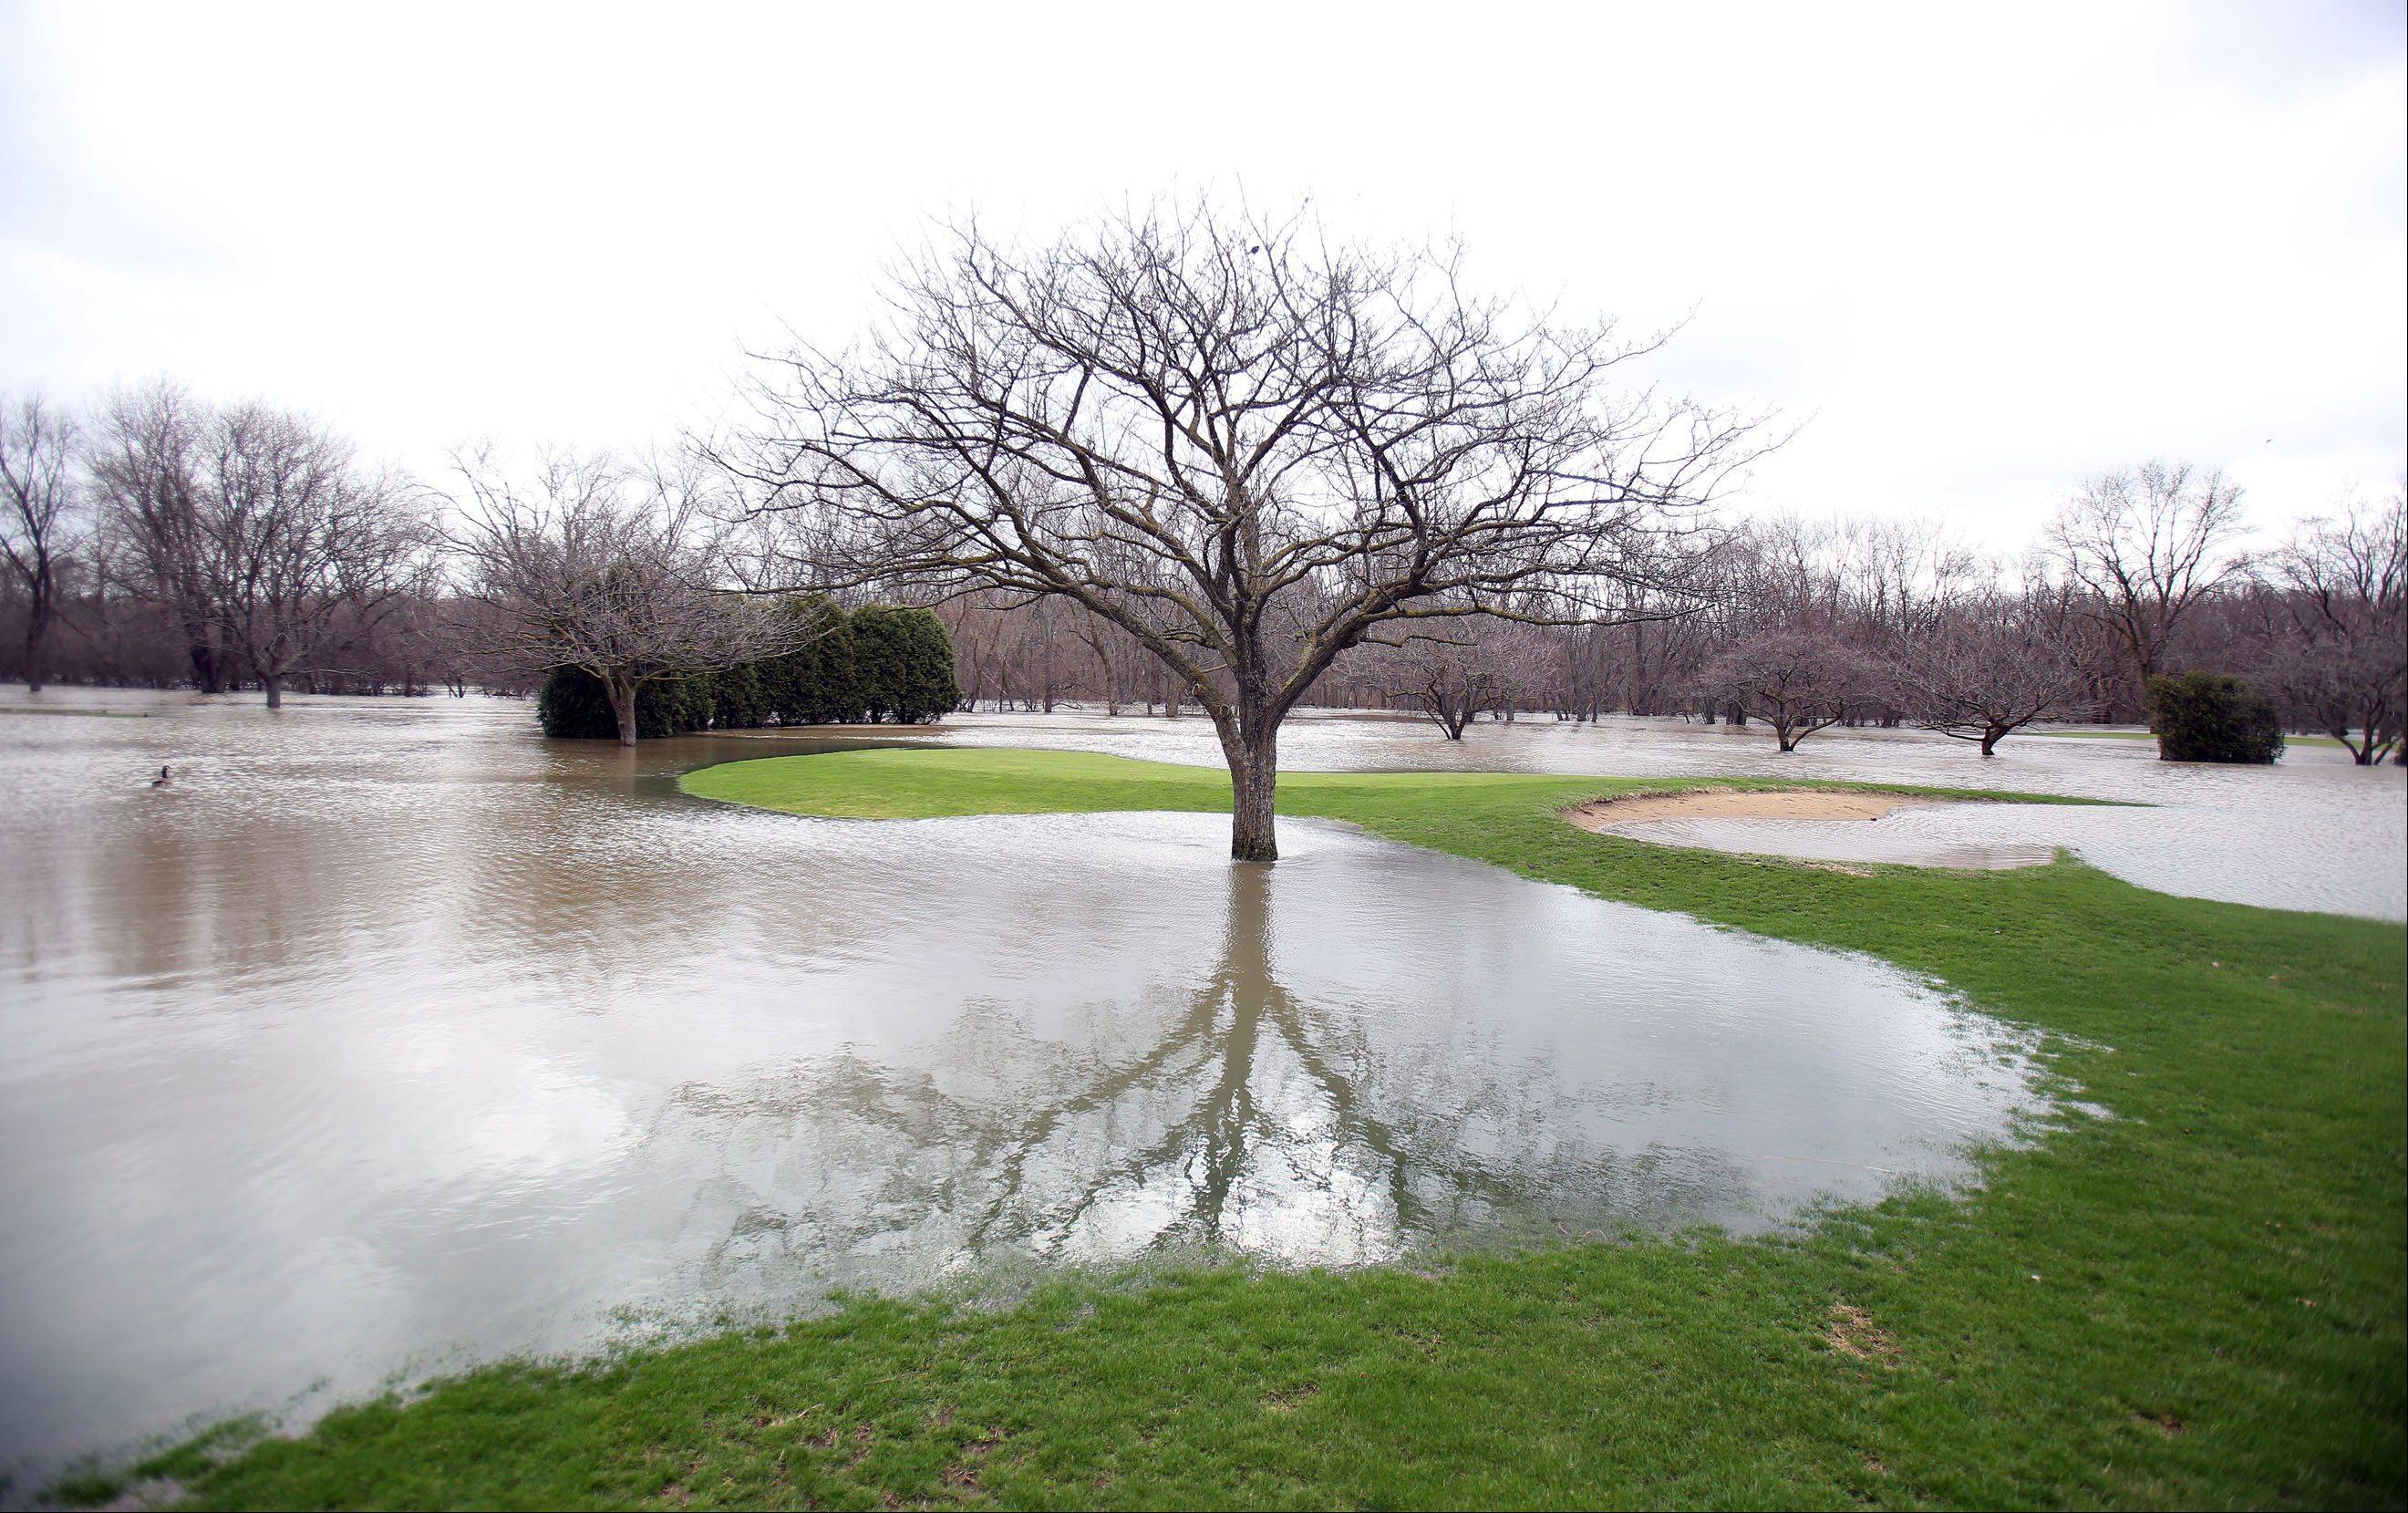 Much of the Riverside Golf Course in Libertyville is under water as the Des Plaines River overflowed its banks Friday morning